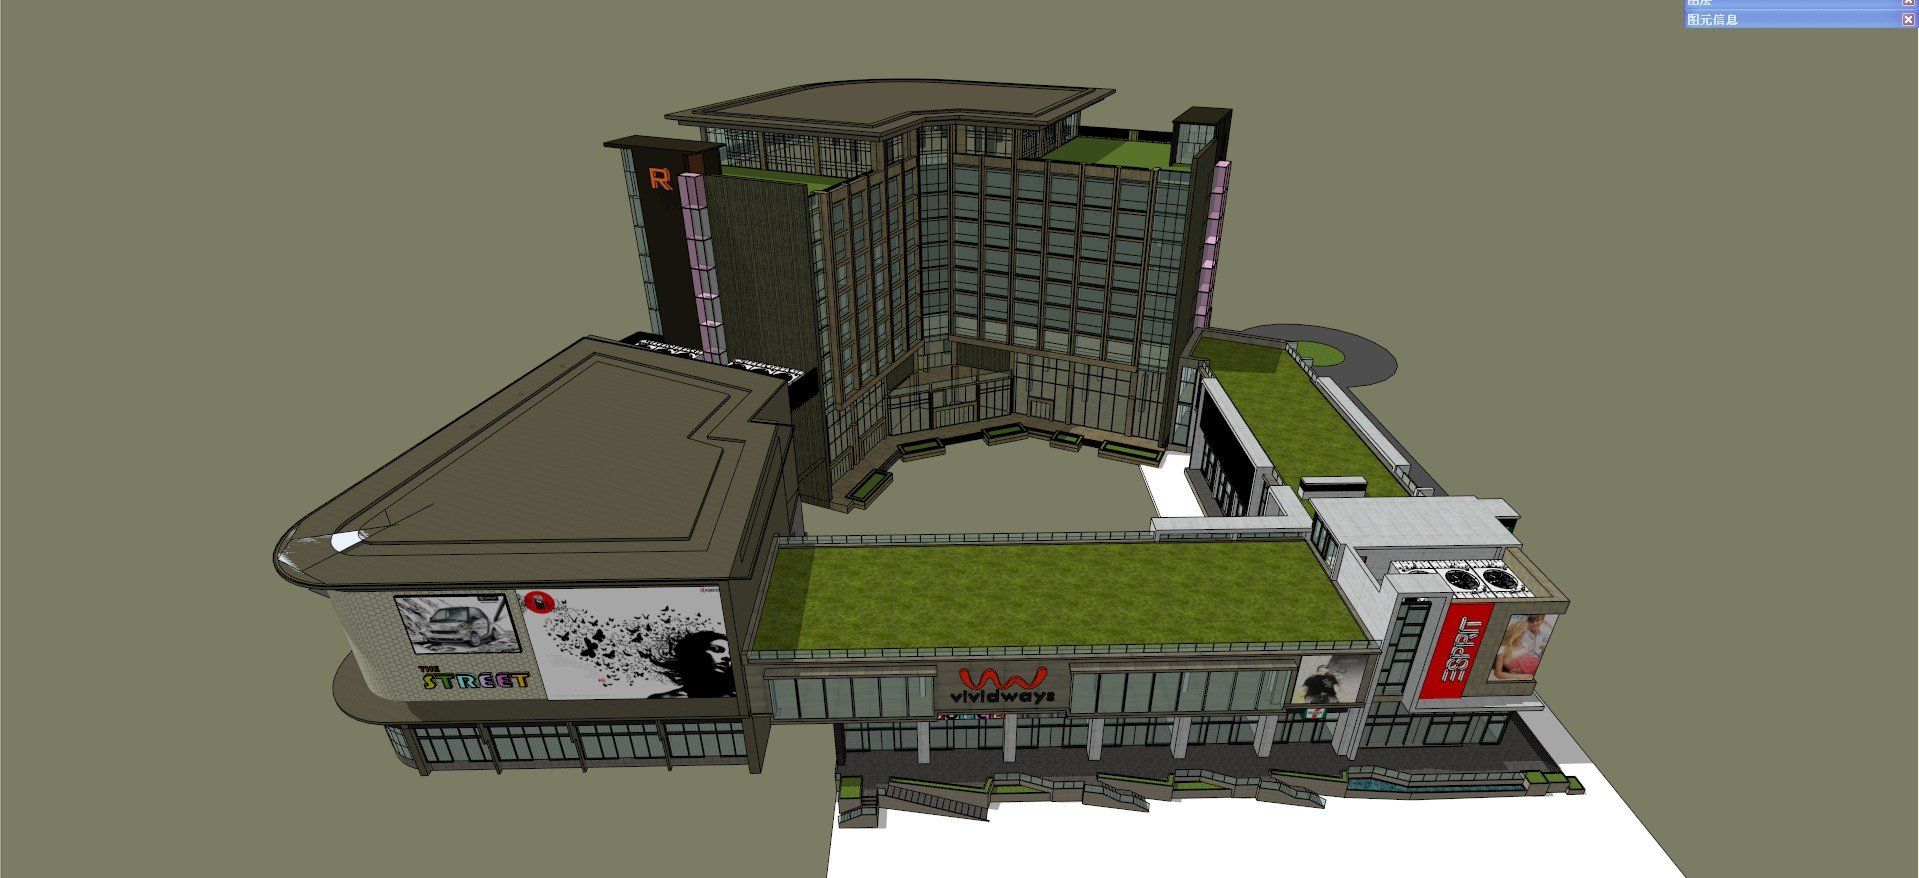 ☆Sketchup 3D Models-Business Building Sketchup Models 2